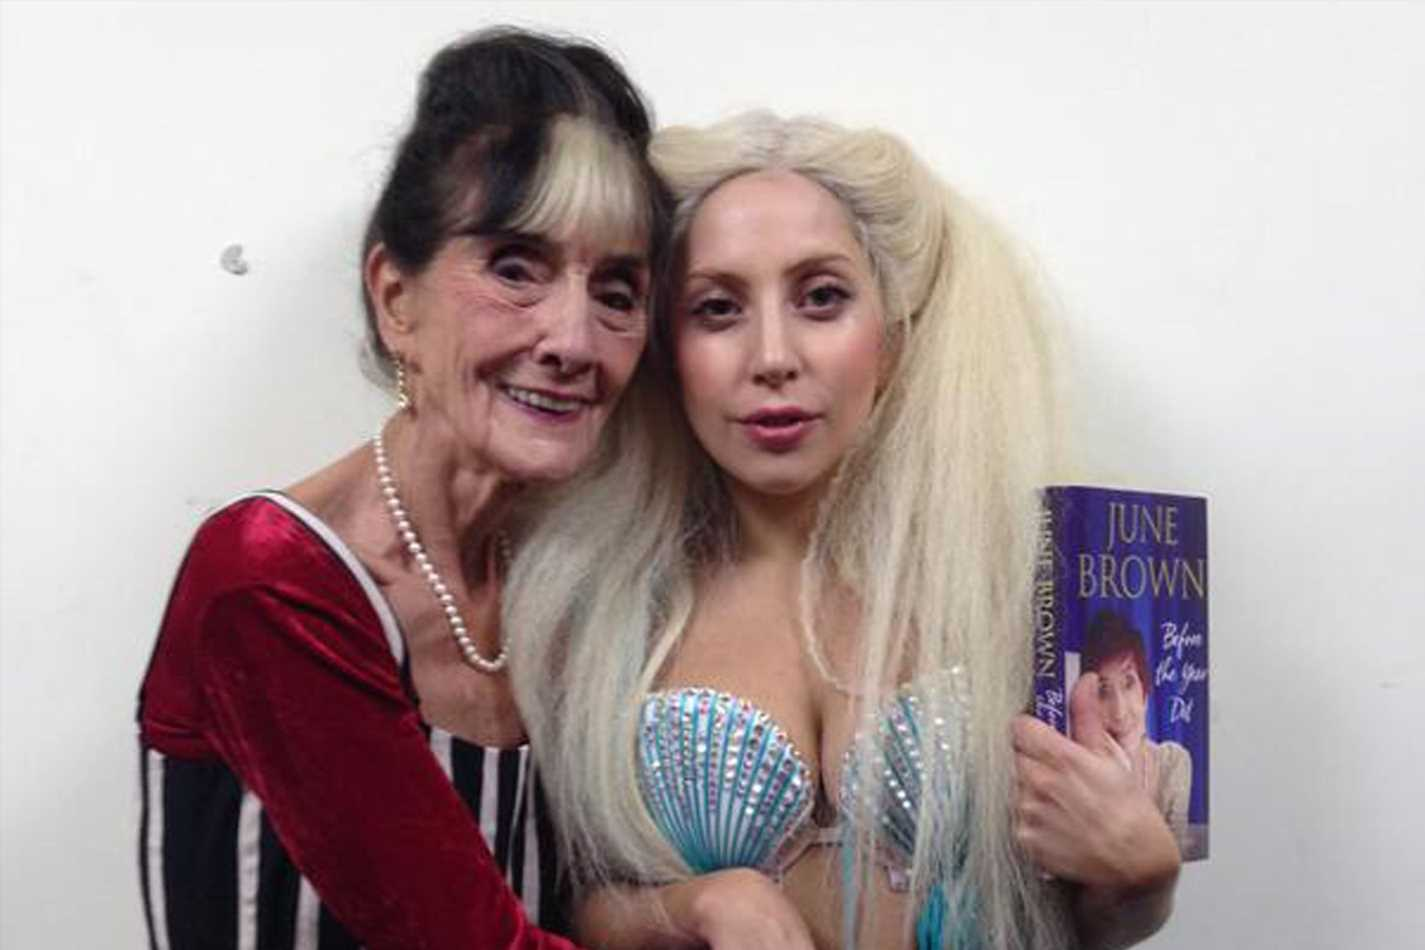 From Lady Gaga and June Brown to Helen Mirren and Russell Brand, we reveal the most unlikely celebrity friendships